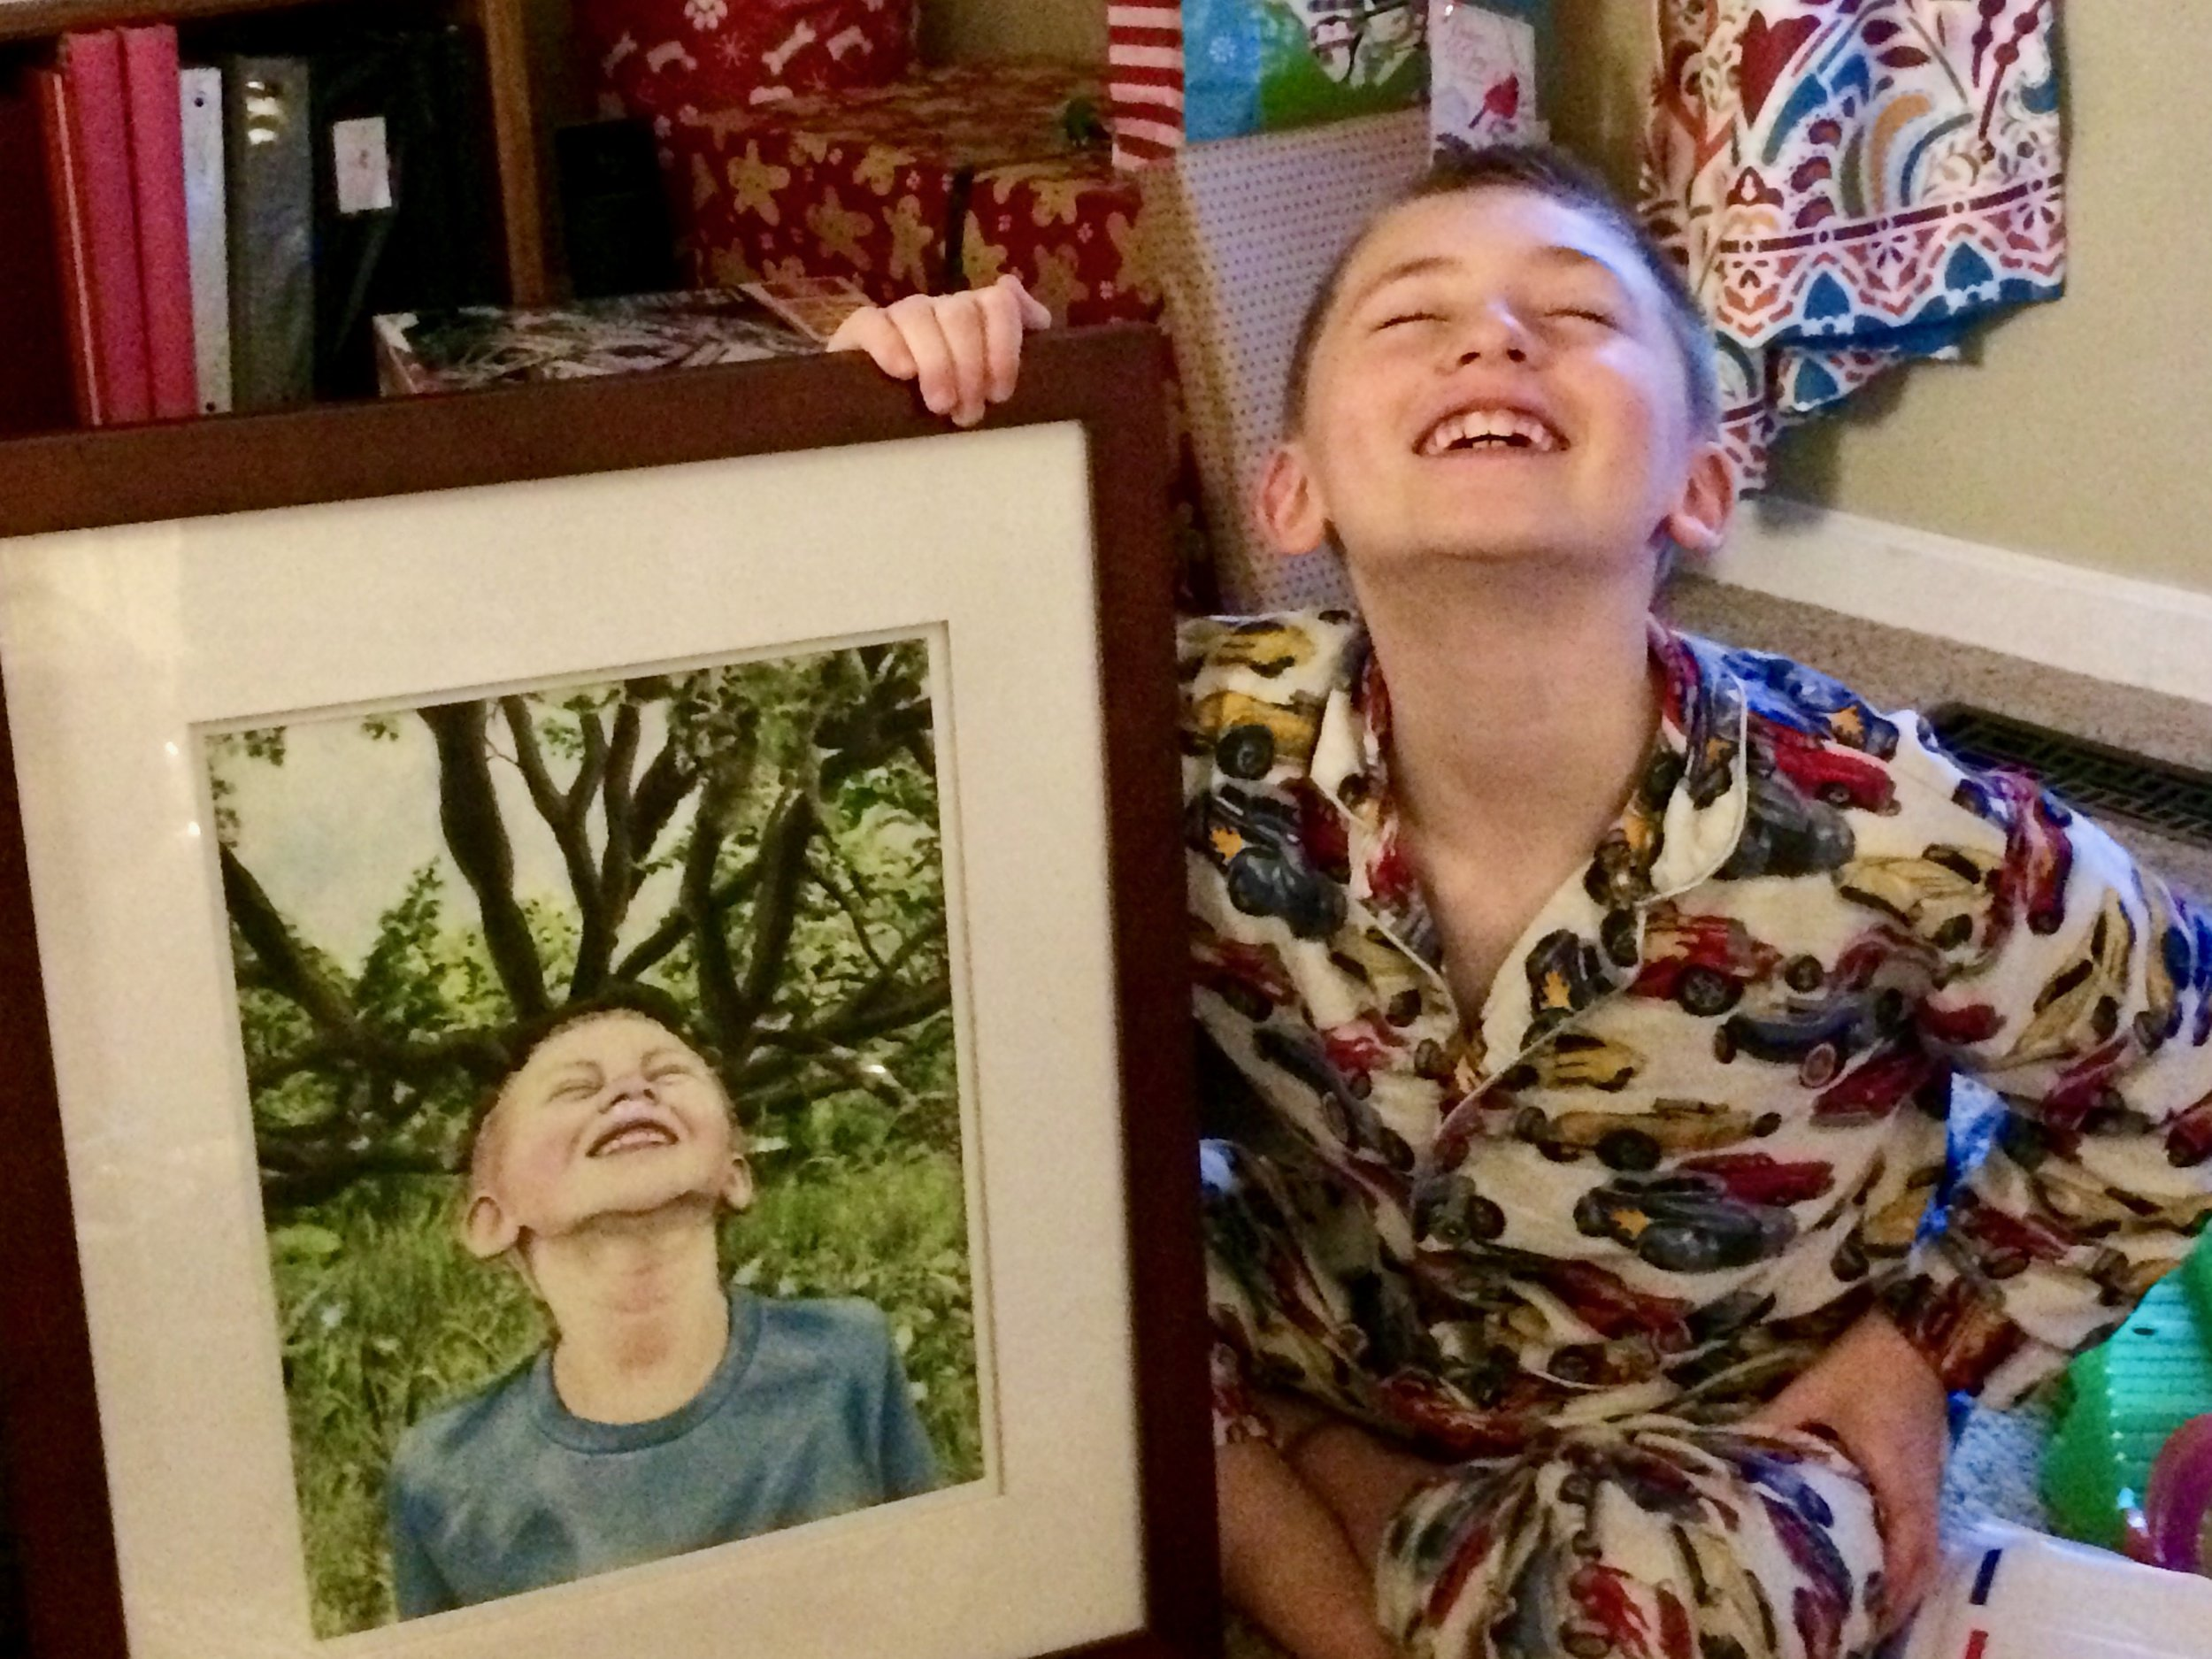 My nephew posing on Christmas morning with the portrait of him I painted